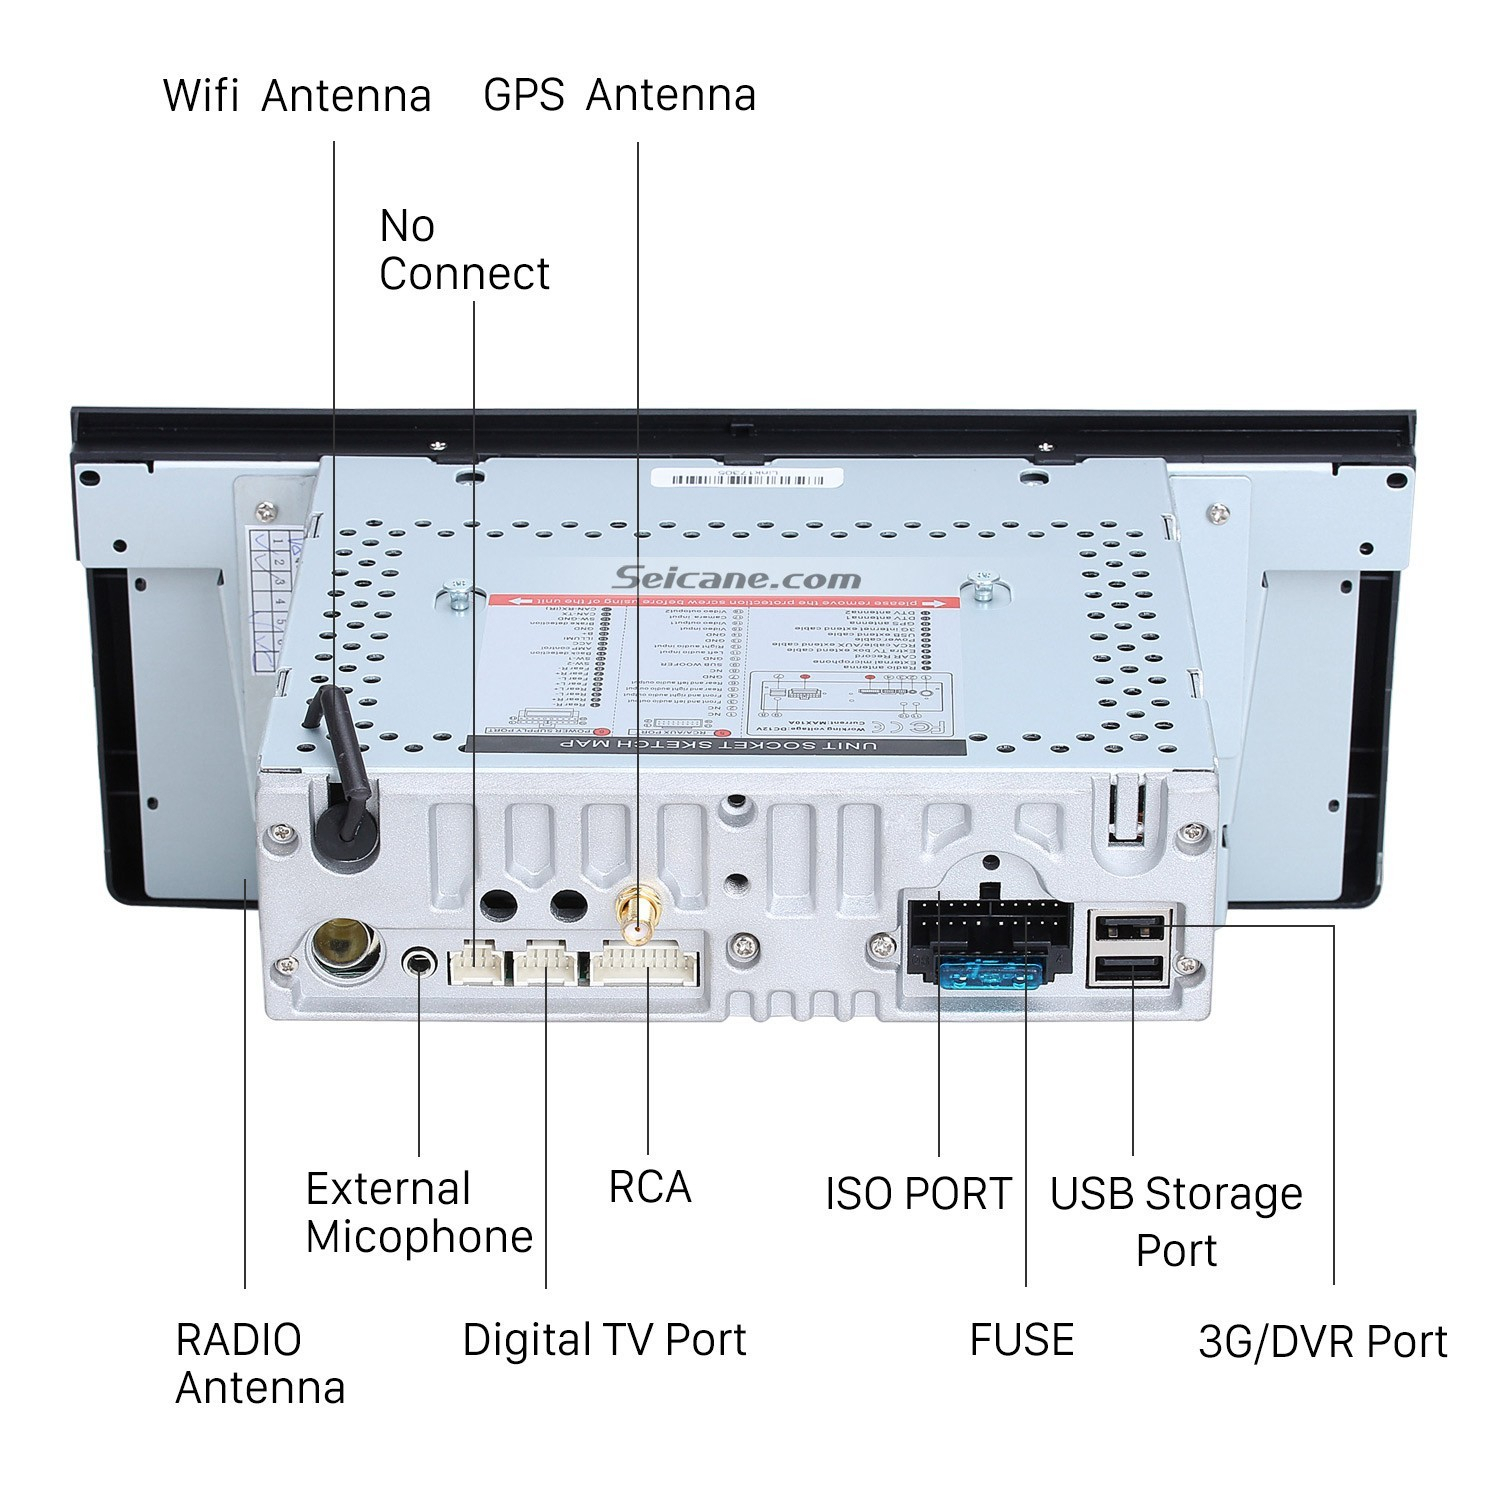 car audio wiring diagram Download-car stereo installation wiring Collection Aftermarket Radio Wiring Diagram Luxury Cheap All In e android 4-g